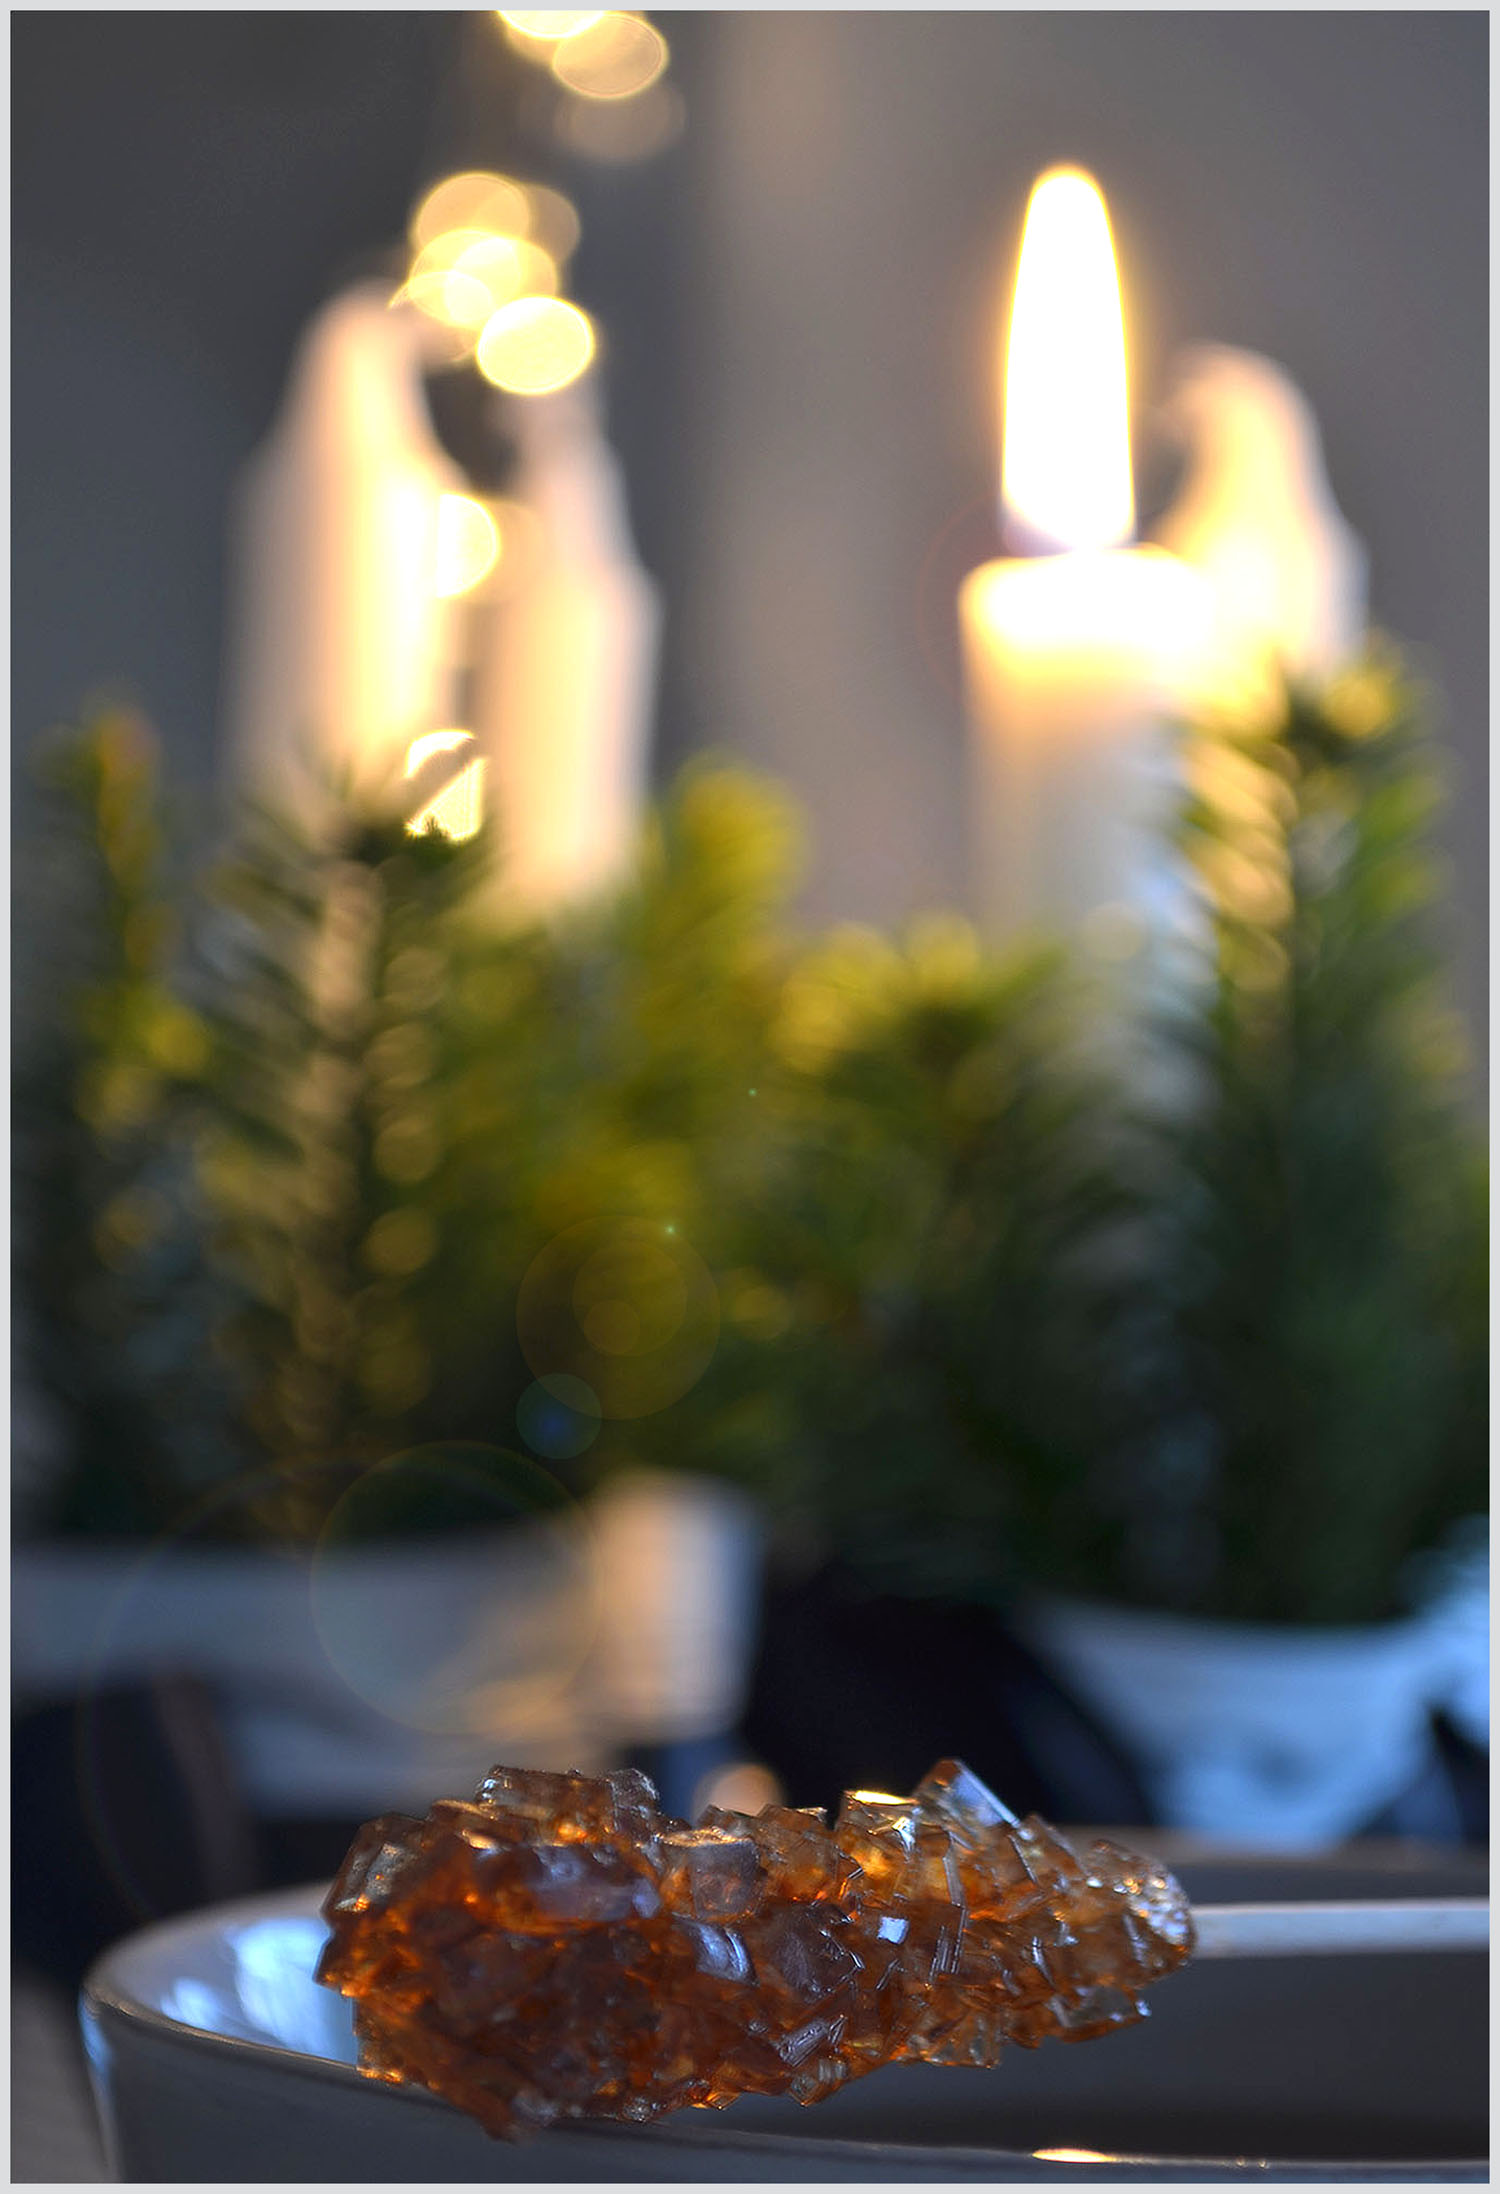 Crystallised Sugar and Advent Candles